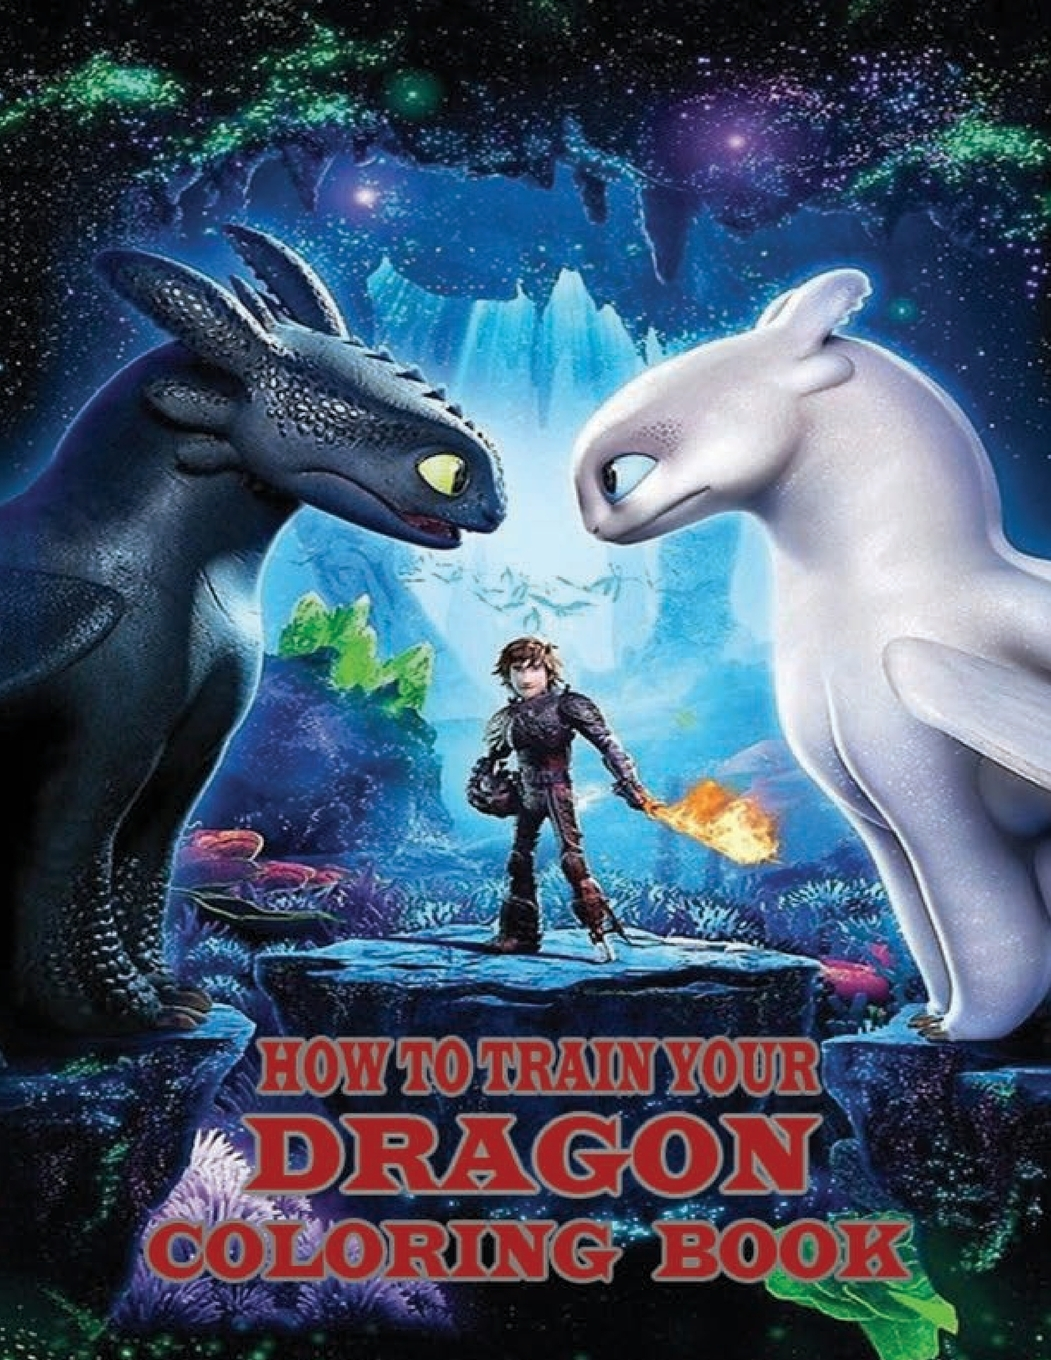 How To Train Your Dragon : How To Train Your Dragon Coloring Book  (Paperback) - Walmart.com - Walmart.com